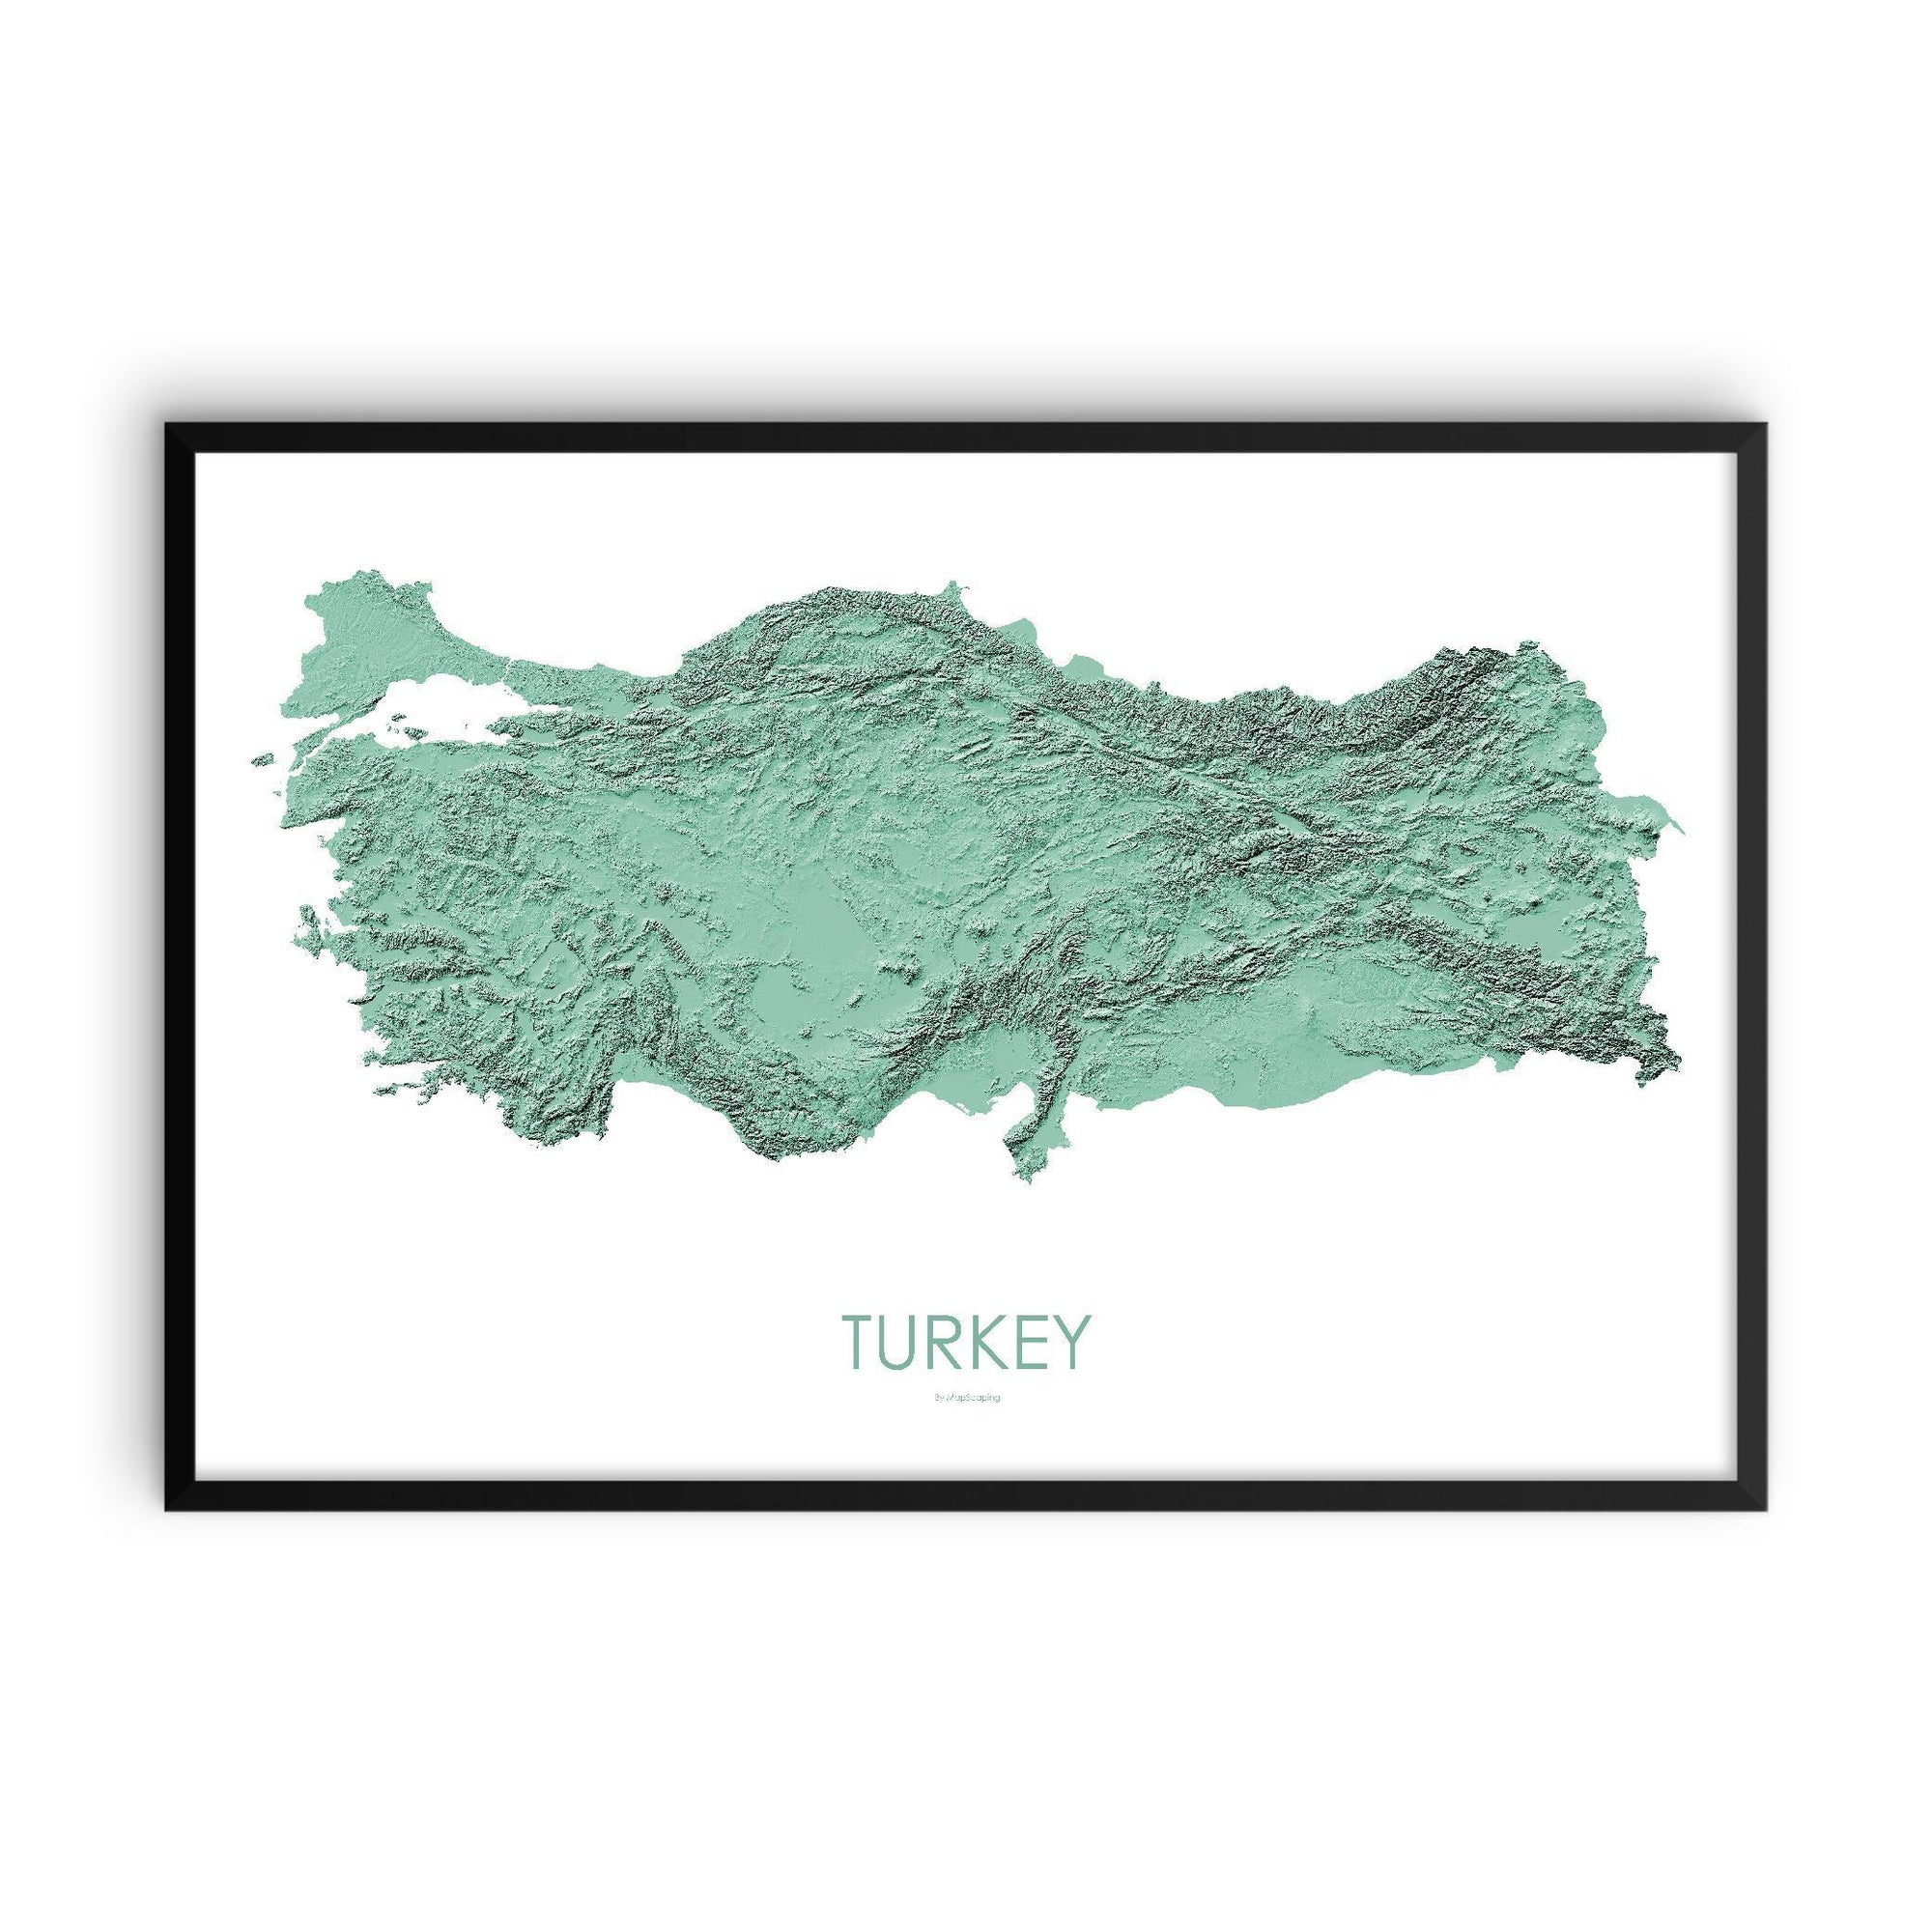 Turkey Poster 3D Mint-topographic wall art map by MapScaping